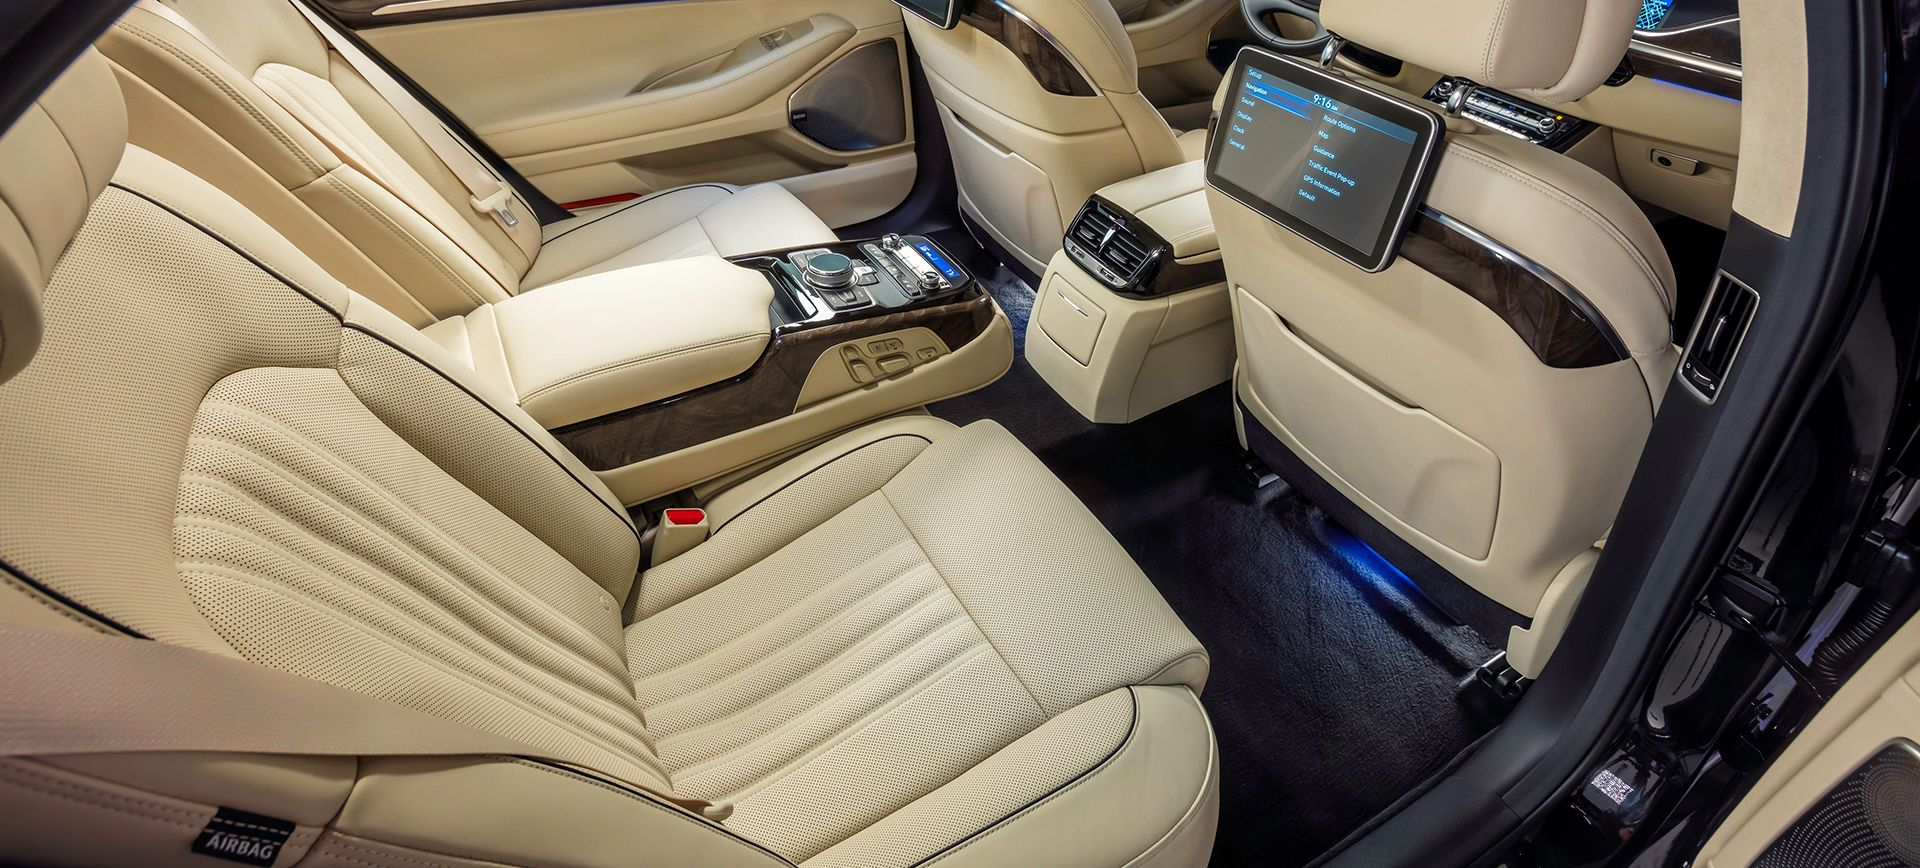 The Back Seats Of The Genesis G90 Are Thrones Hyundai Genesis Hyundai Genesis Coupe Hyundai